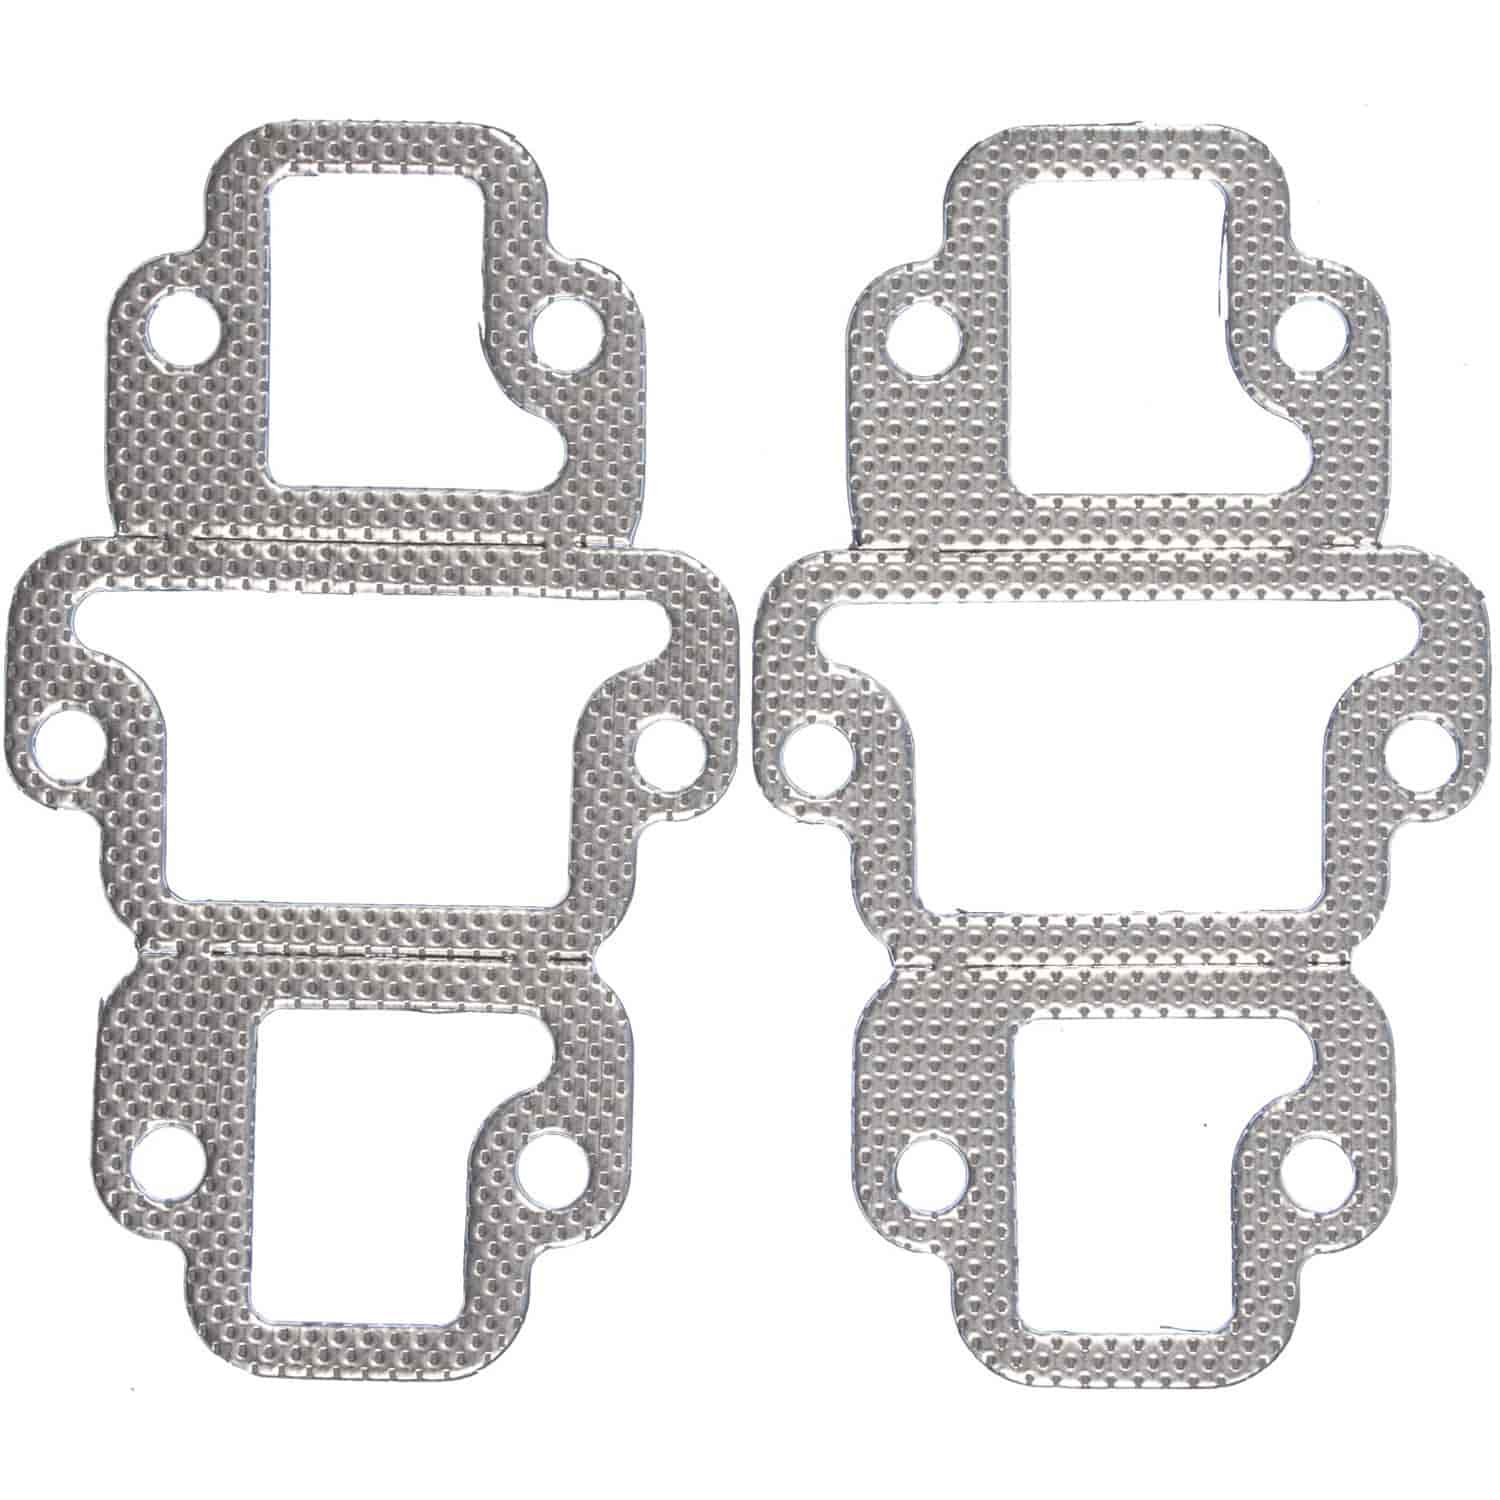 Clevite Mahle Ms14143 Exhaust Manifold Gasket Set 1971 1991 Amc Jeep